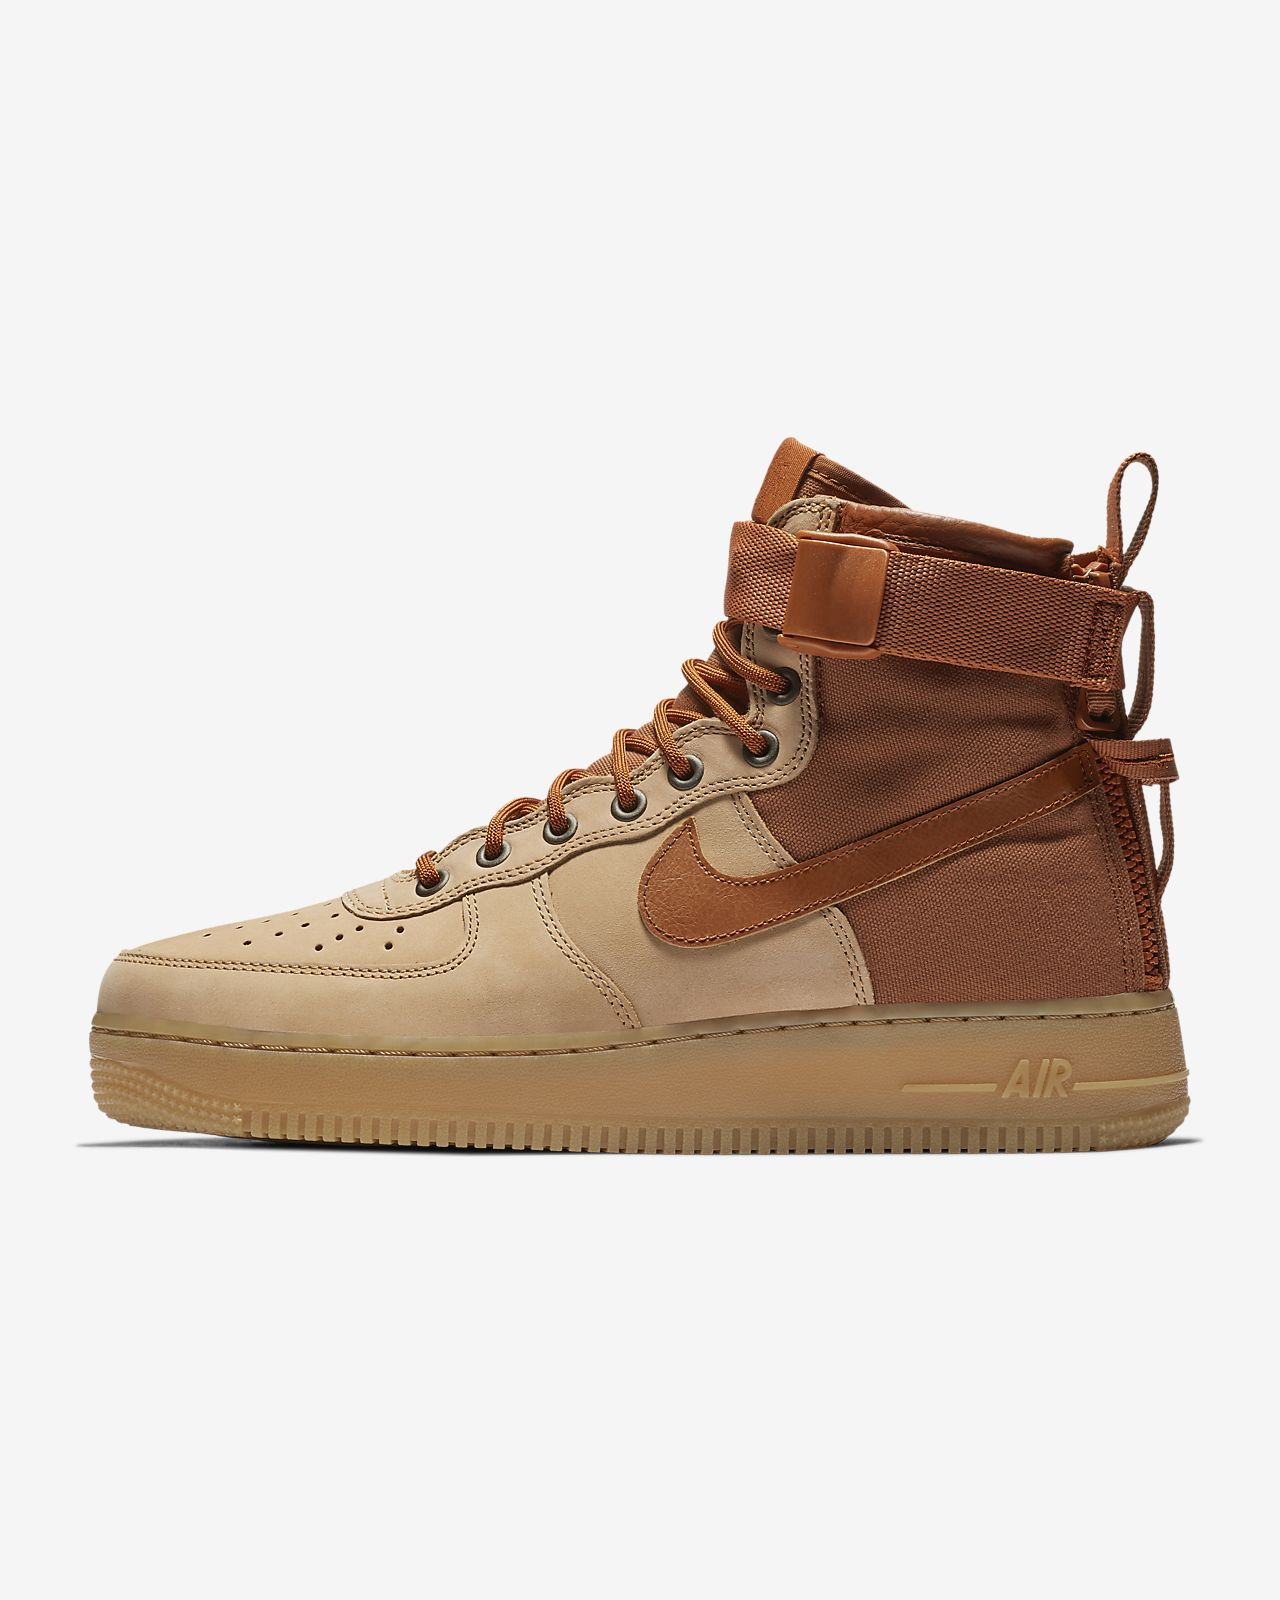 3cc0044a9fd Nike SF Air Force 1 Mid Premium Men s Shoe. Nike.com BE